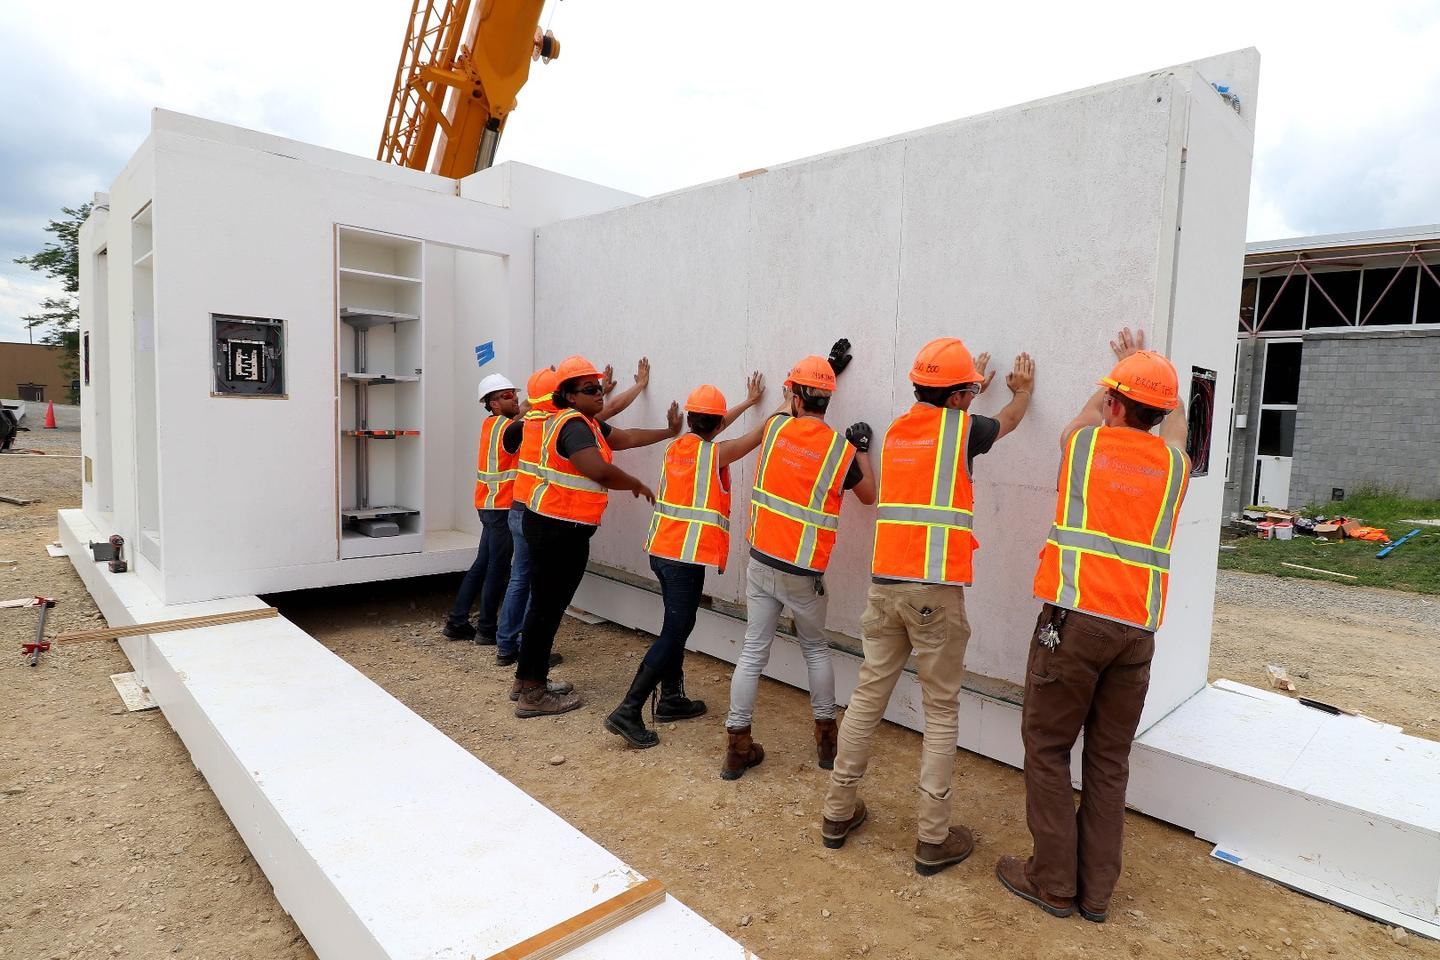 Following several years of research and development, an accidental fire and rebuild, and a month spent in the Dubai desert, Virginia Tech students have won the 2018 Solar Decathlon Middle East with the FutureHaus